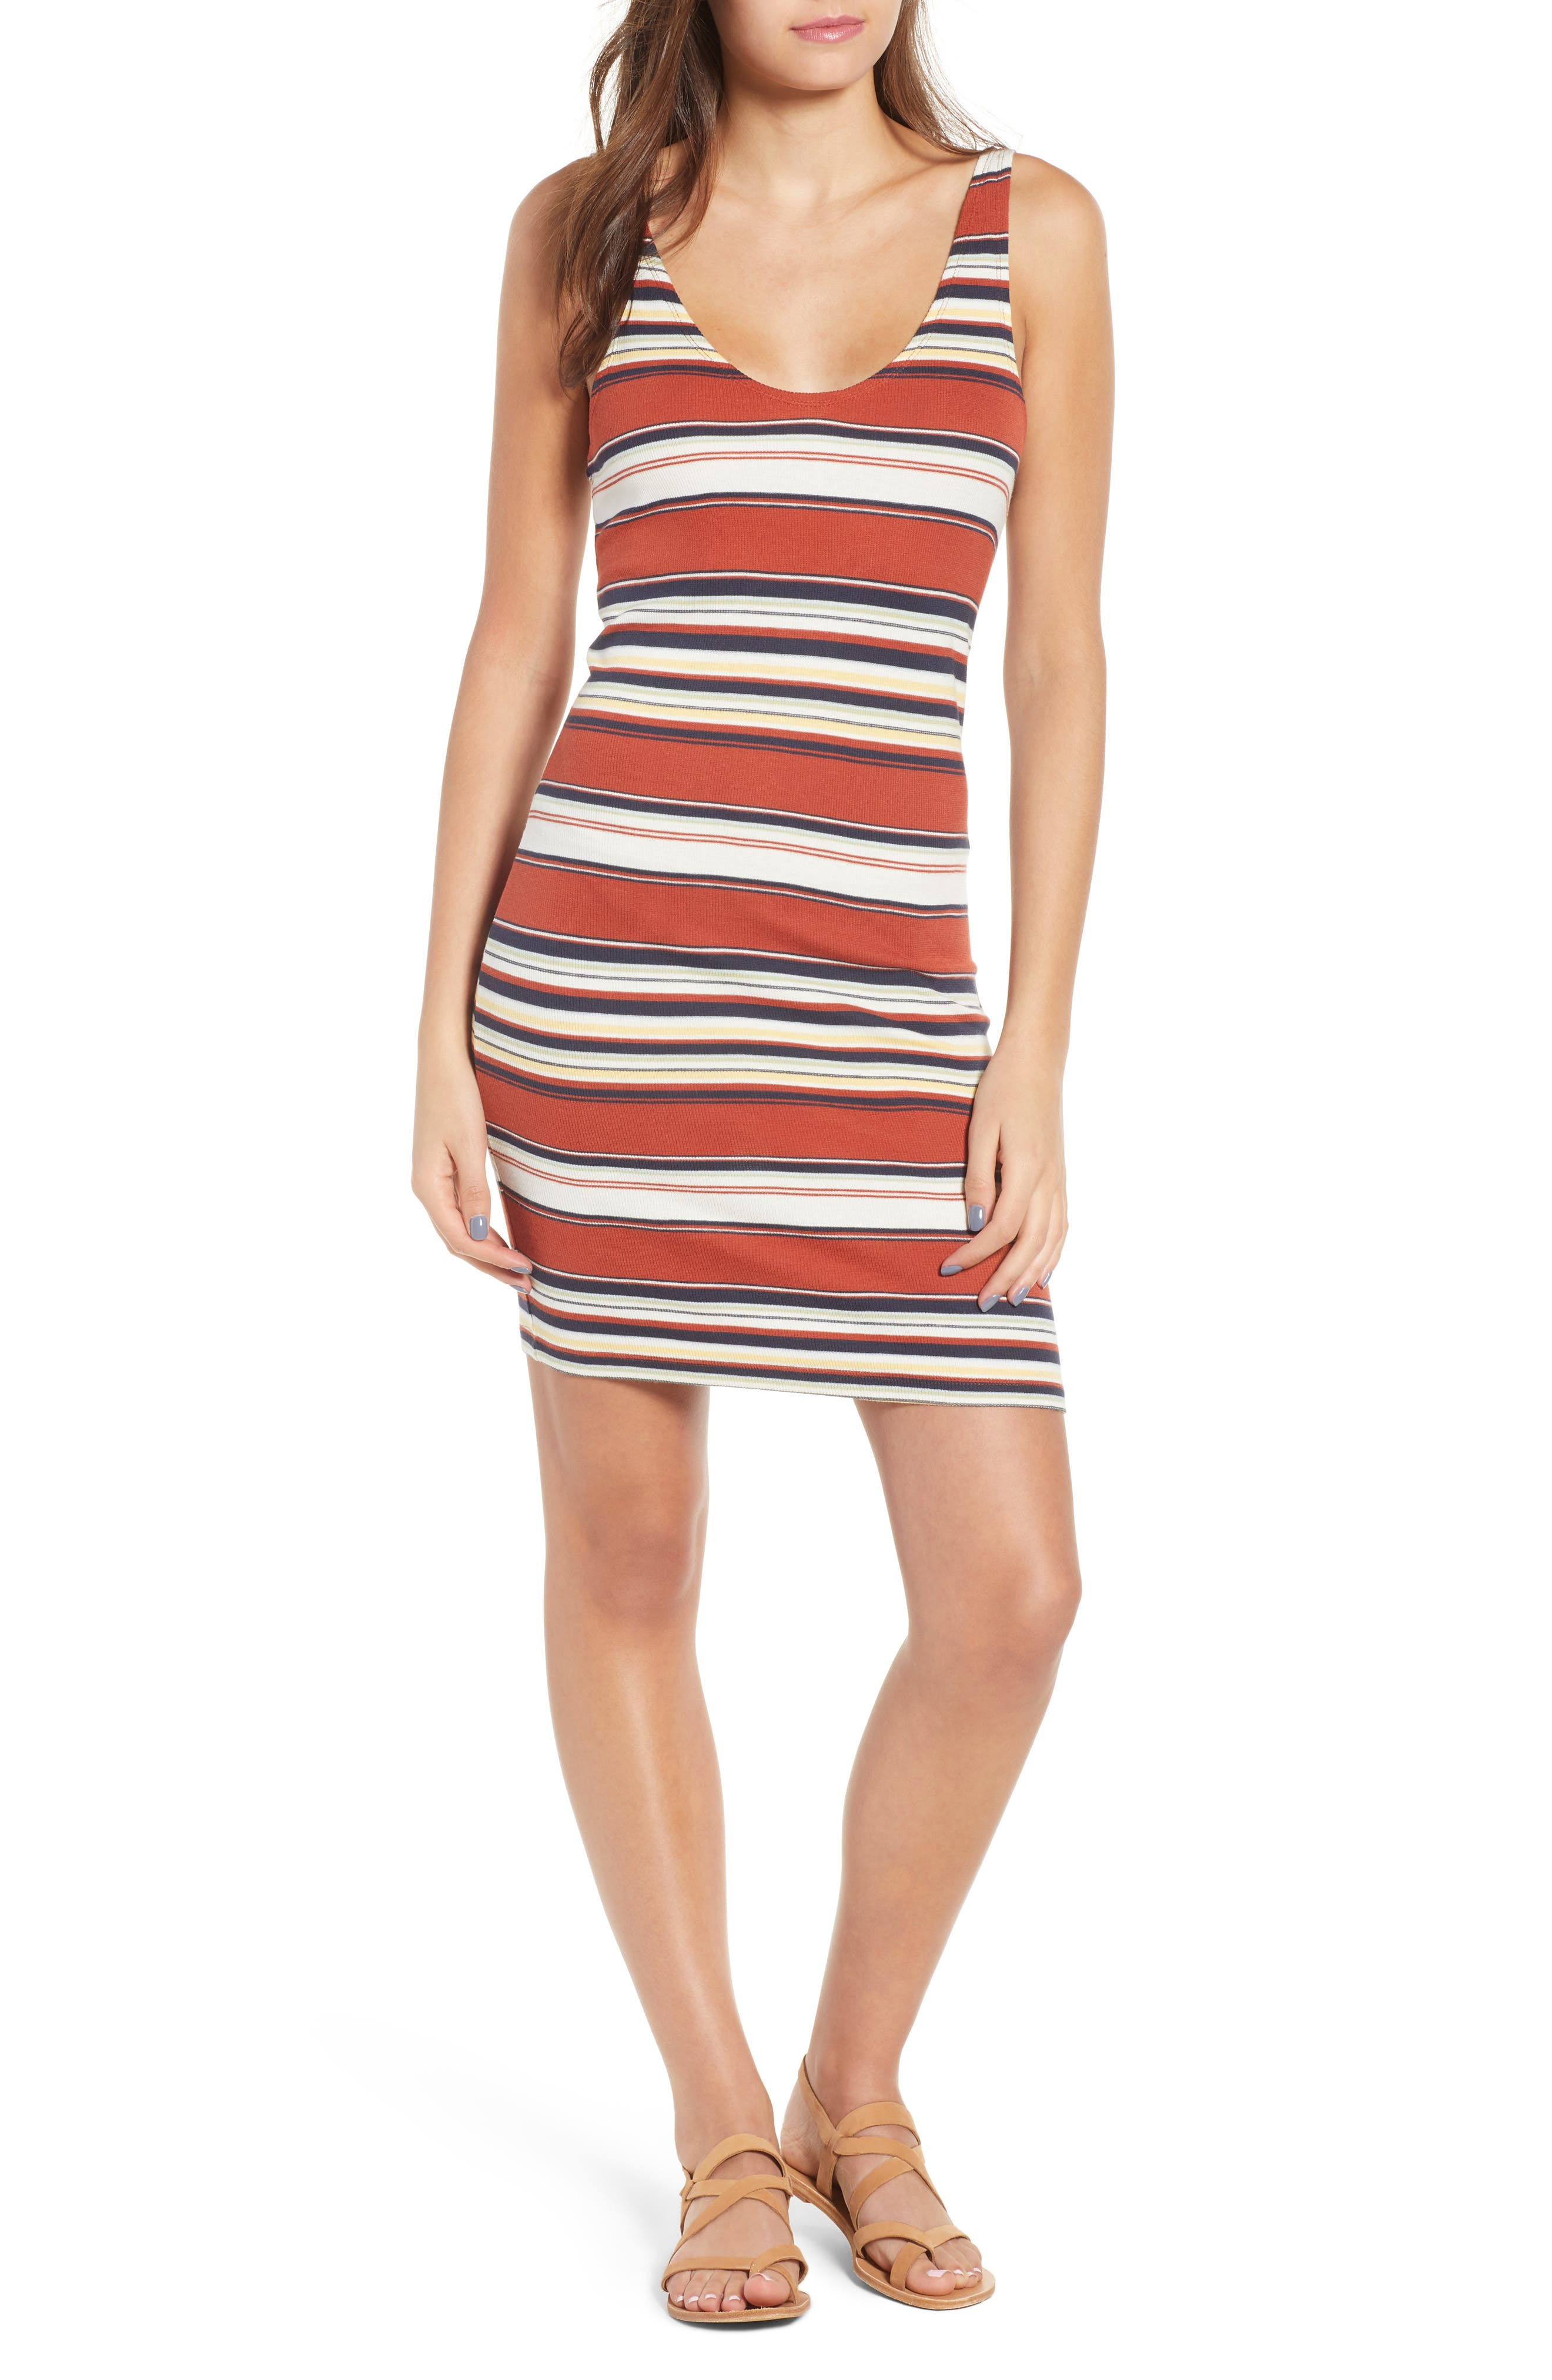 Homesick Stripe Ribbed Dress,                             Main thumbnail 1, color,